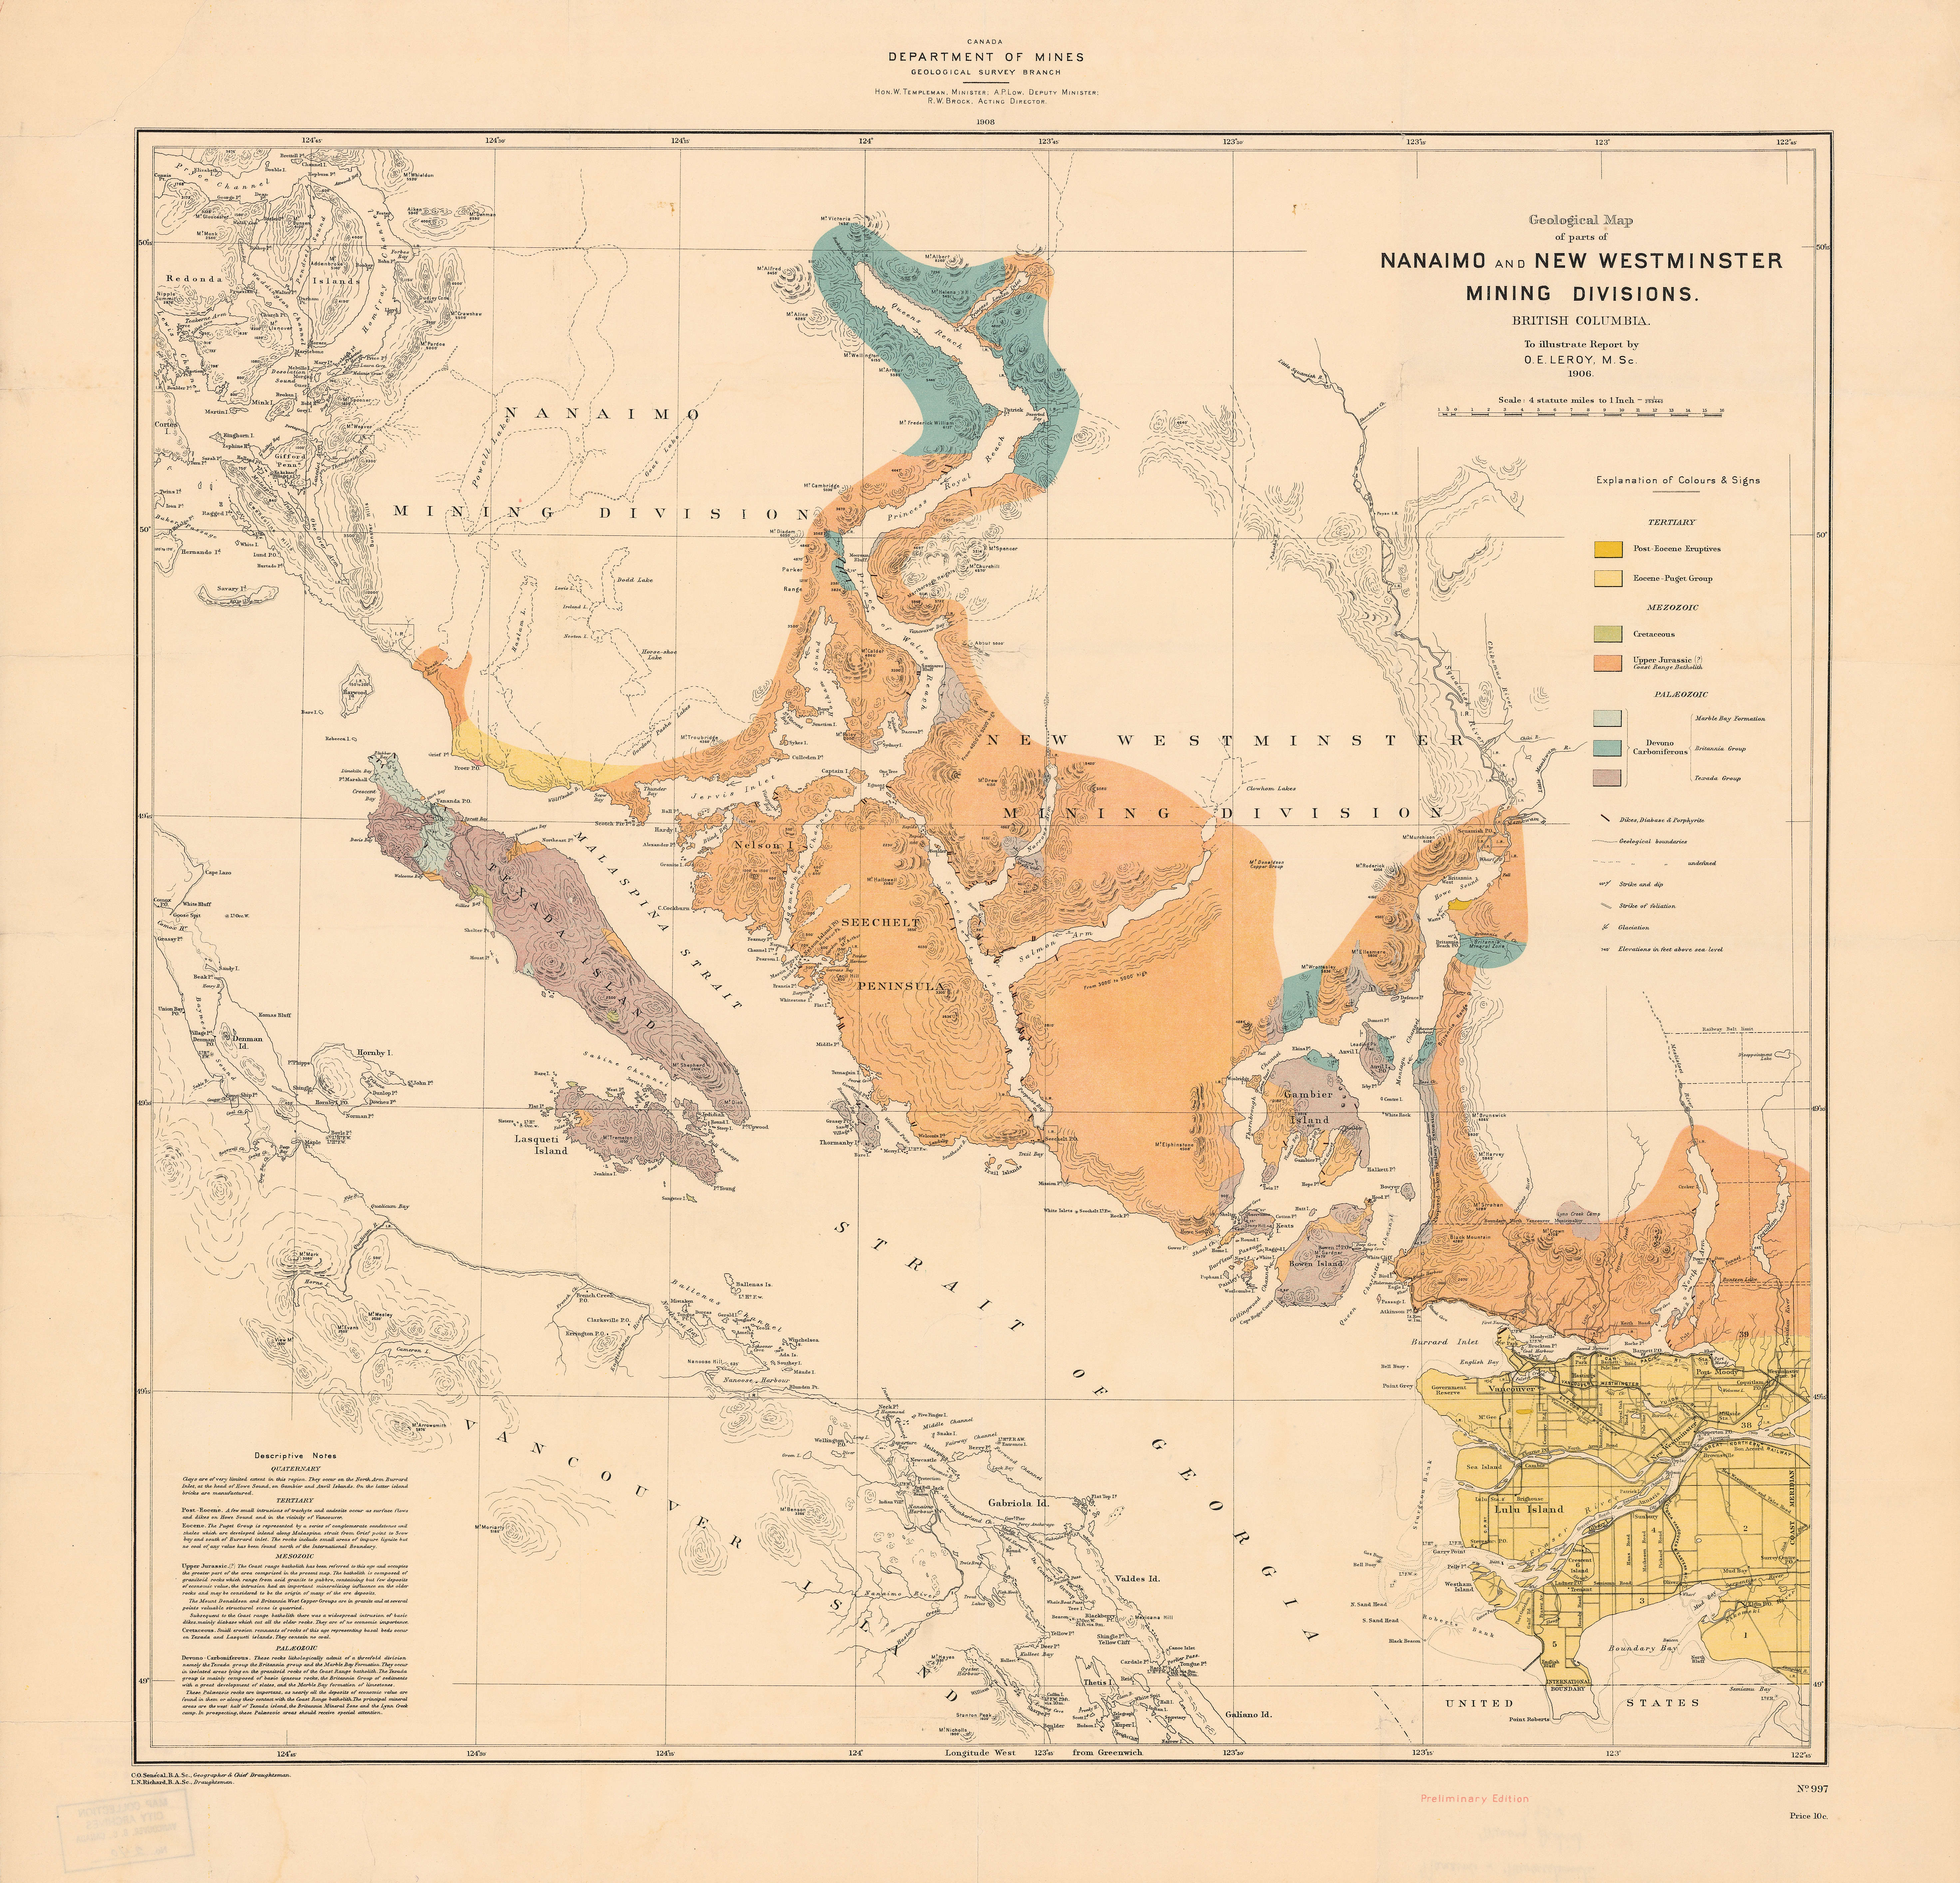 Geological map of parts of Nanaimo and New Westminster mining